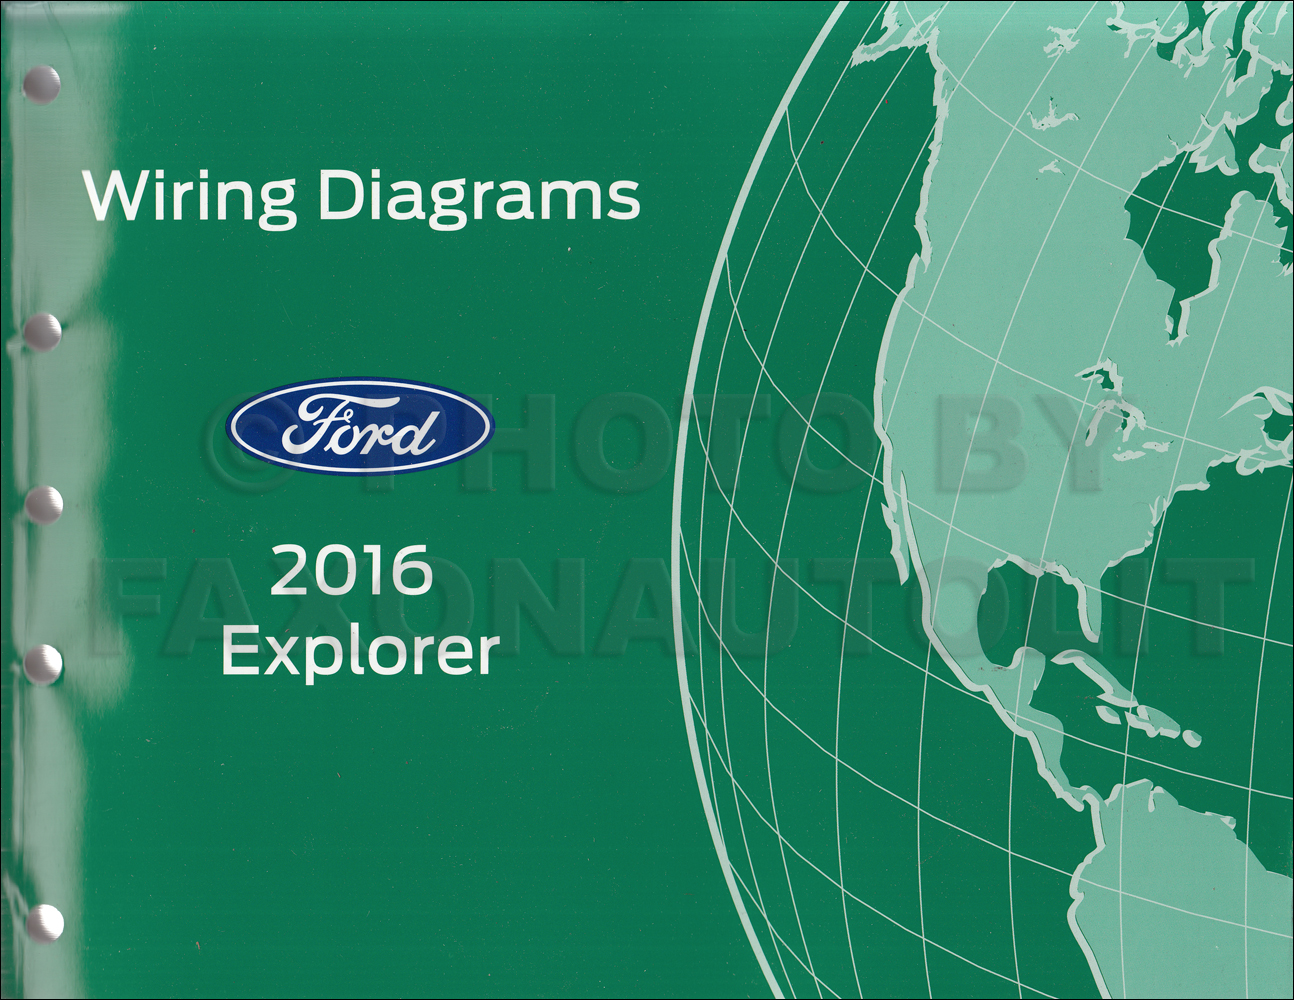 hight resolution of 2016 ford explorer wiring diagram manual original ford explorer pcm wiring diagram ford explorer wiring diagram